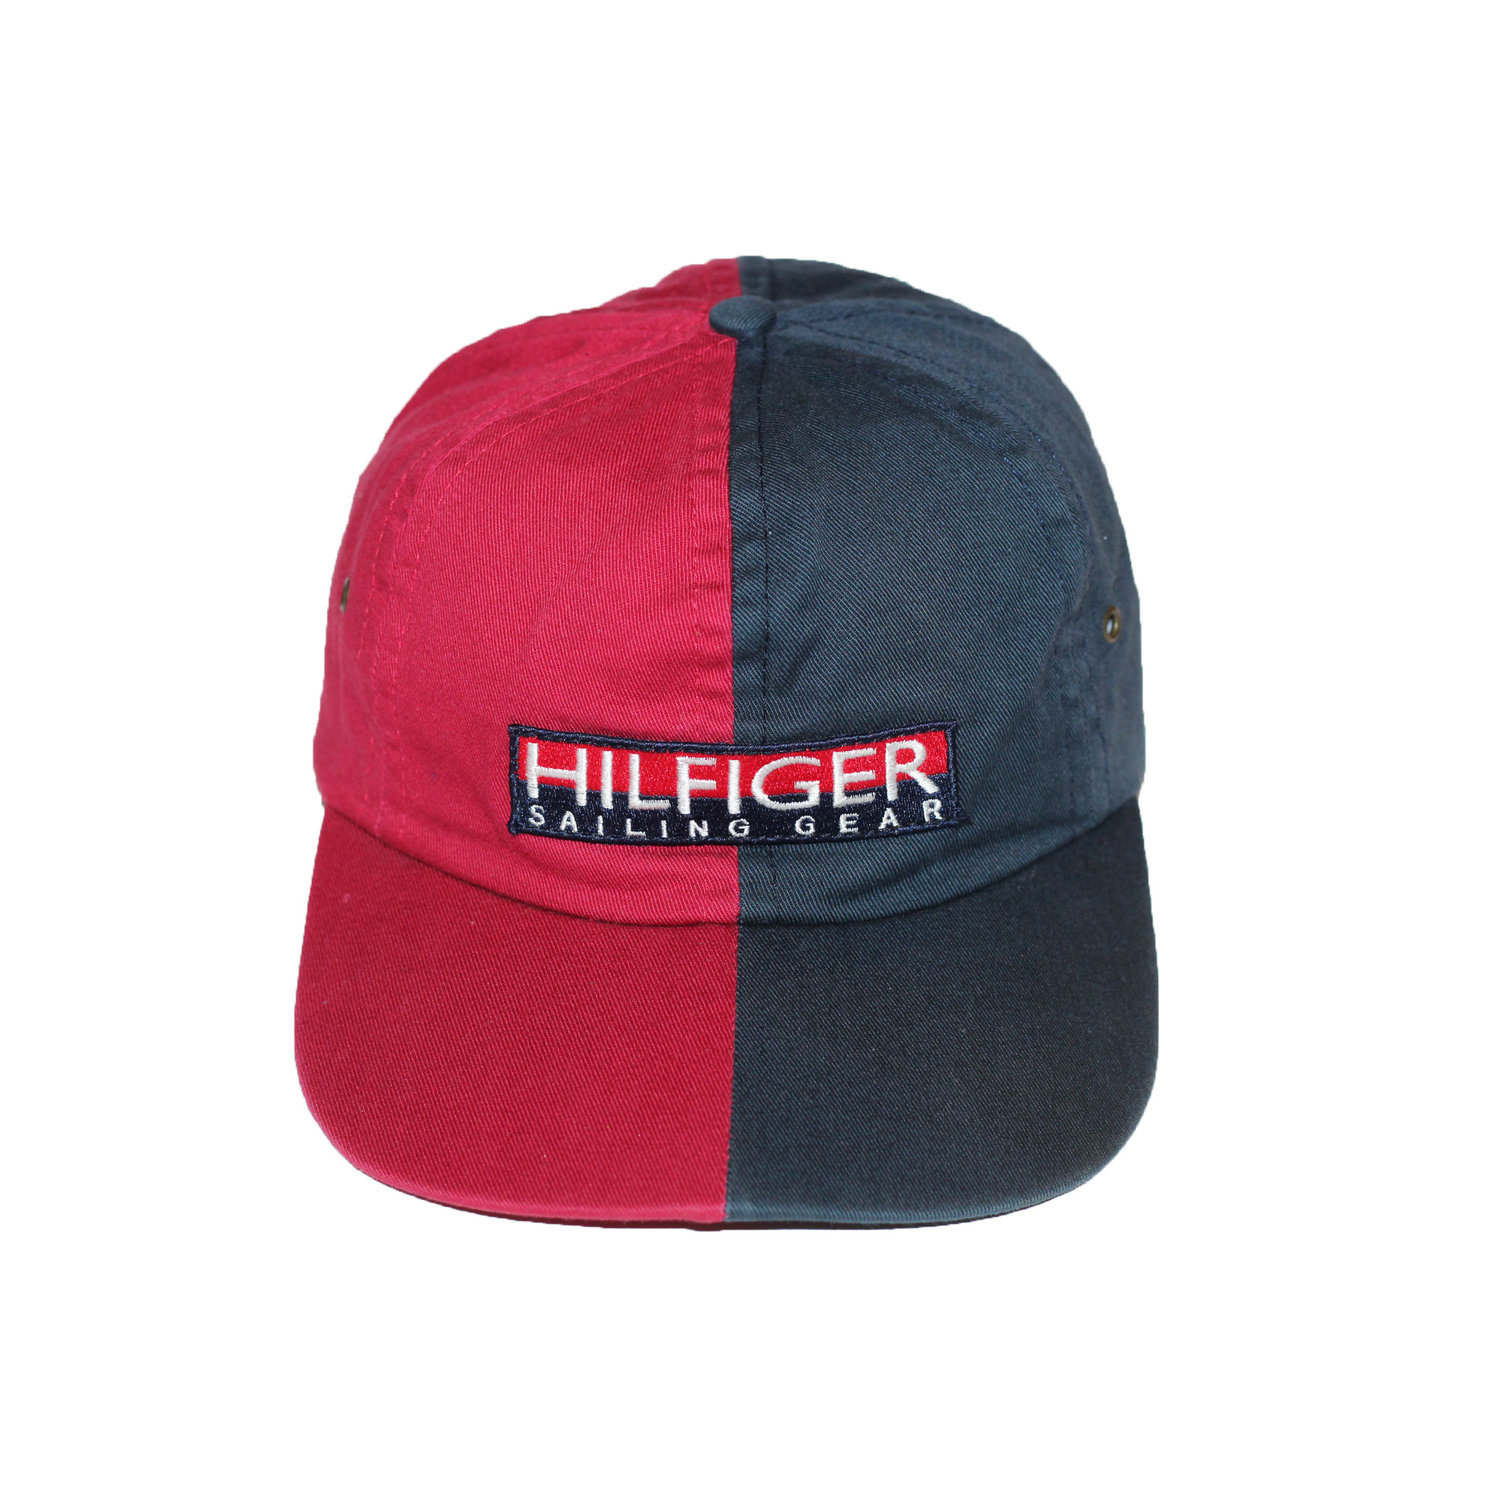 f68430fb Vintage Tommy Hilfiger Sailing Gear split navy/red snapback